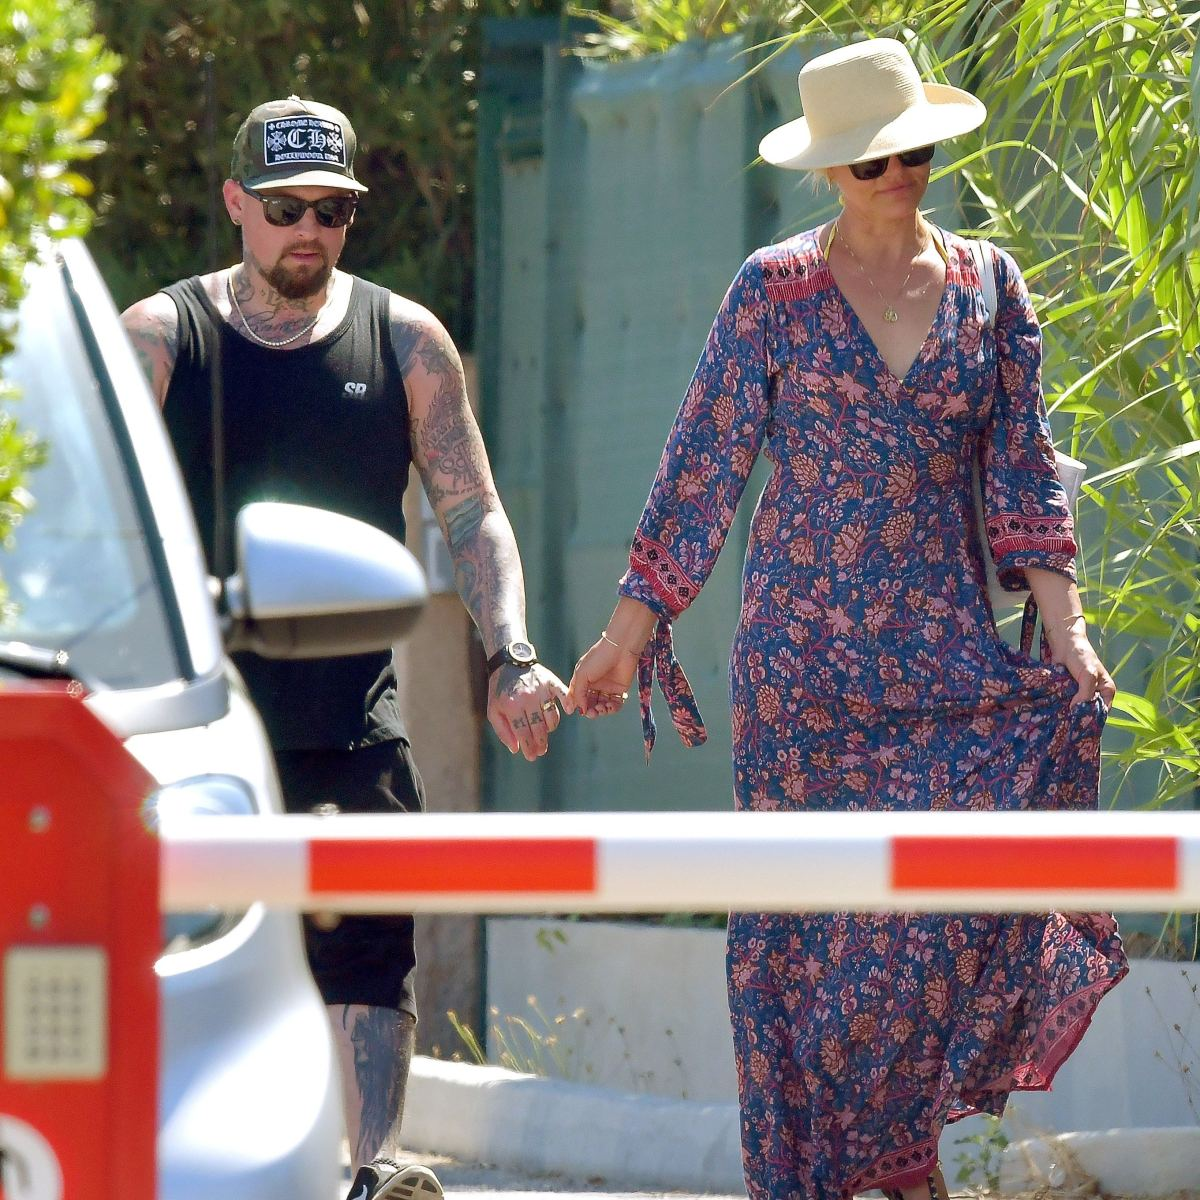 Cameron Diaz and Husband Benji Madden Take Romantic Stroll in Rare Public Outing — See the Pics!